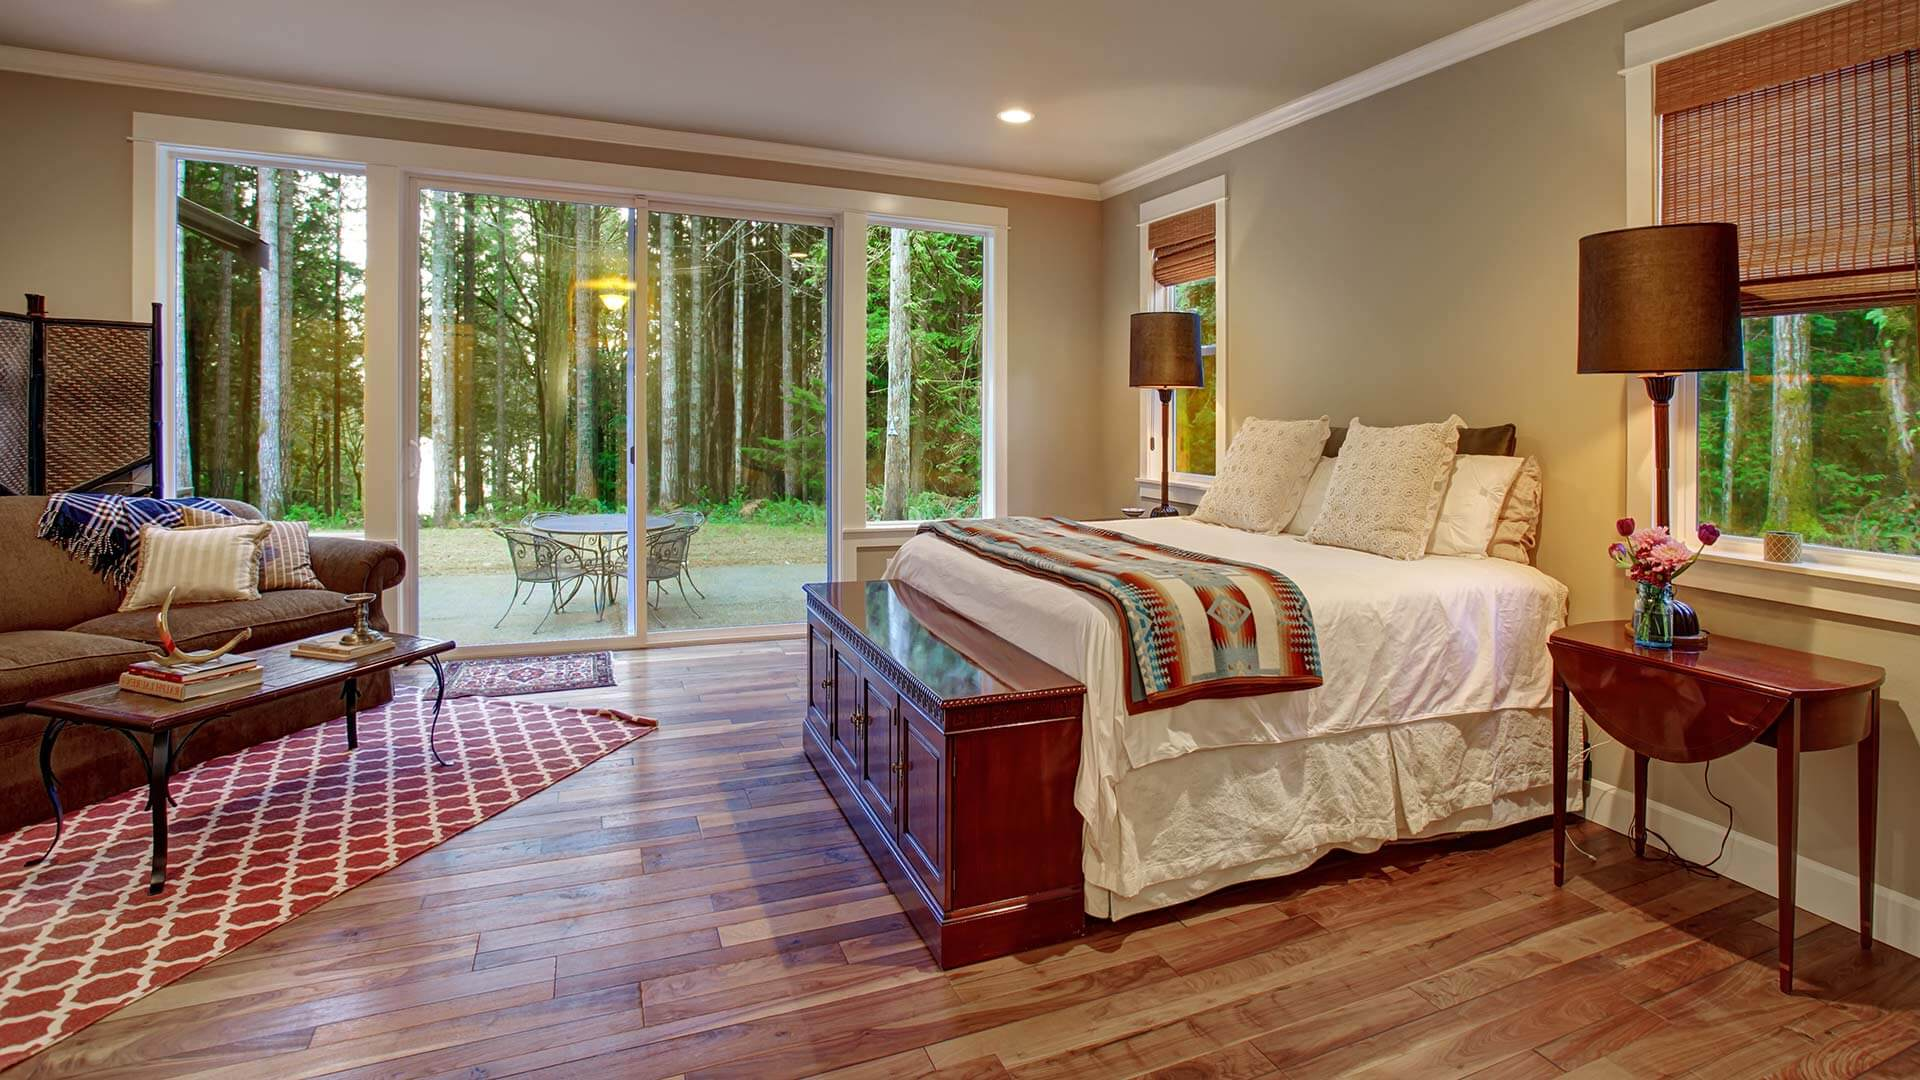 Patio doors with sidelites installed in a bedroom with rustic wood flooring.